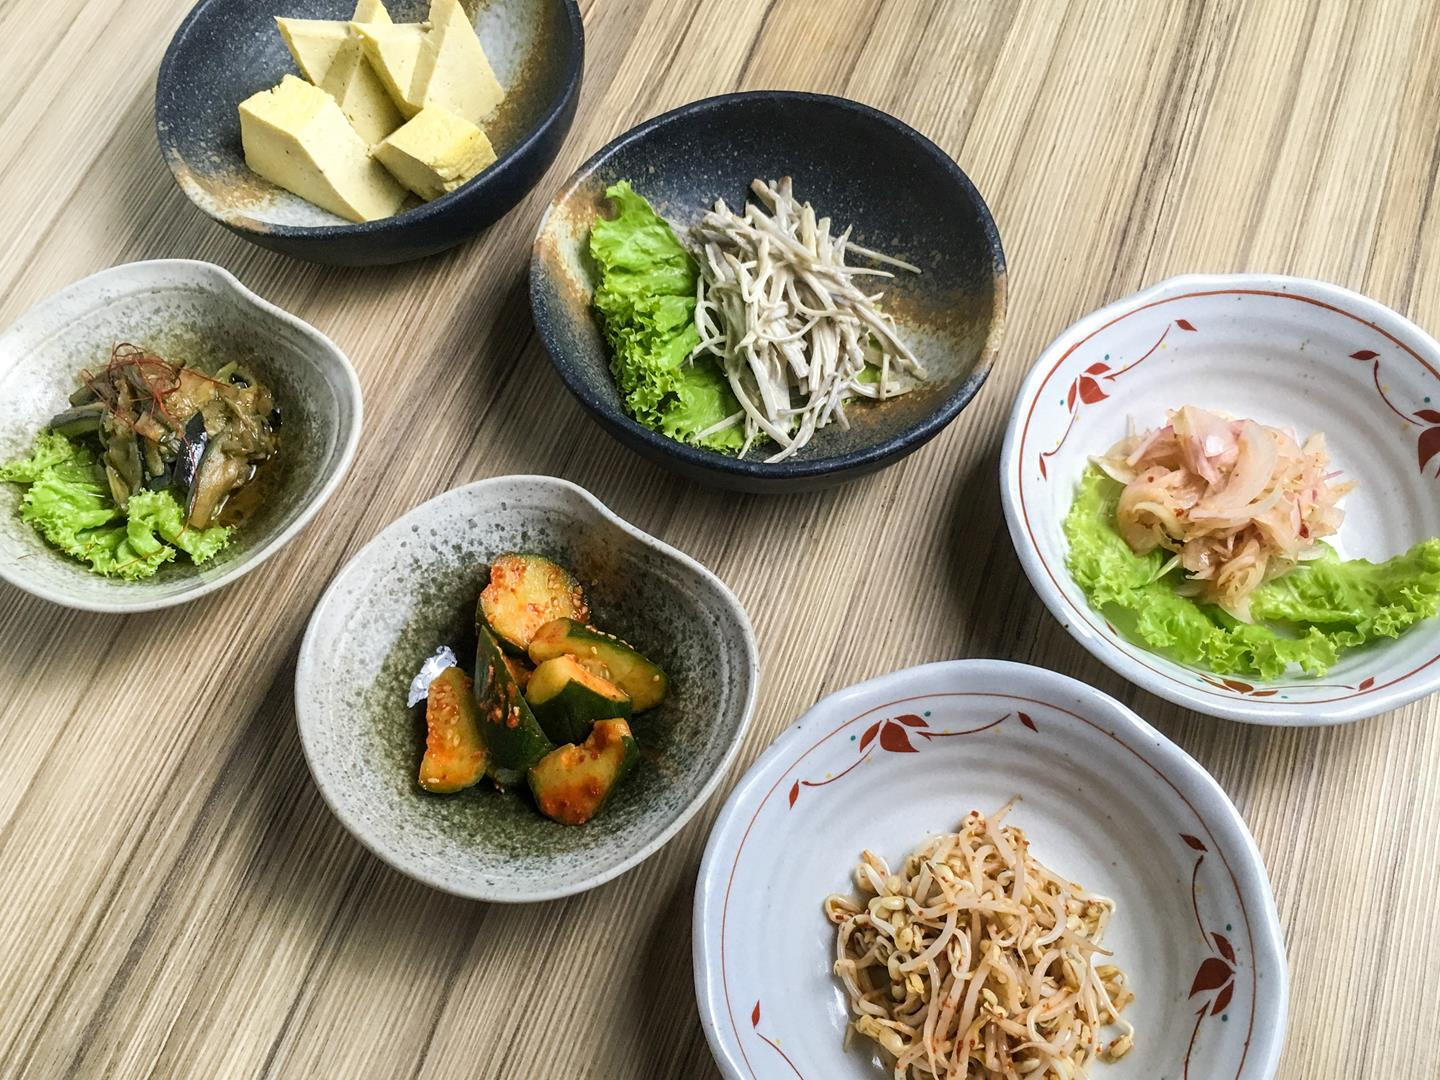 Bowls of bean sprouts, cucumber, eggplant, tofu, and shallots form part of Kitsho's Father's Day special set menu.